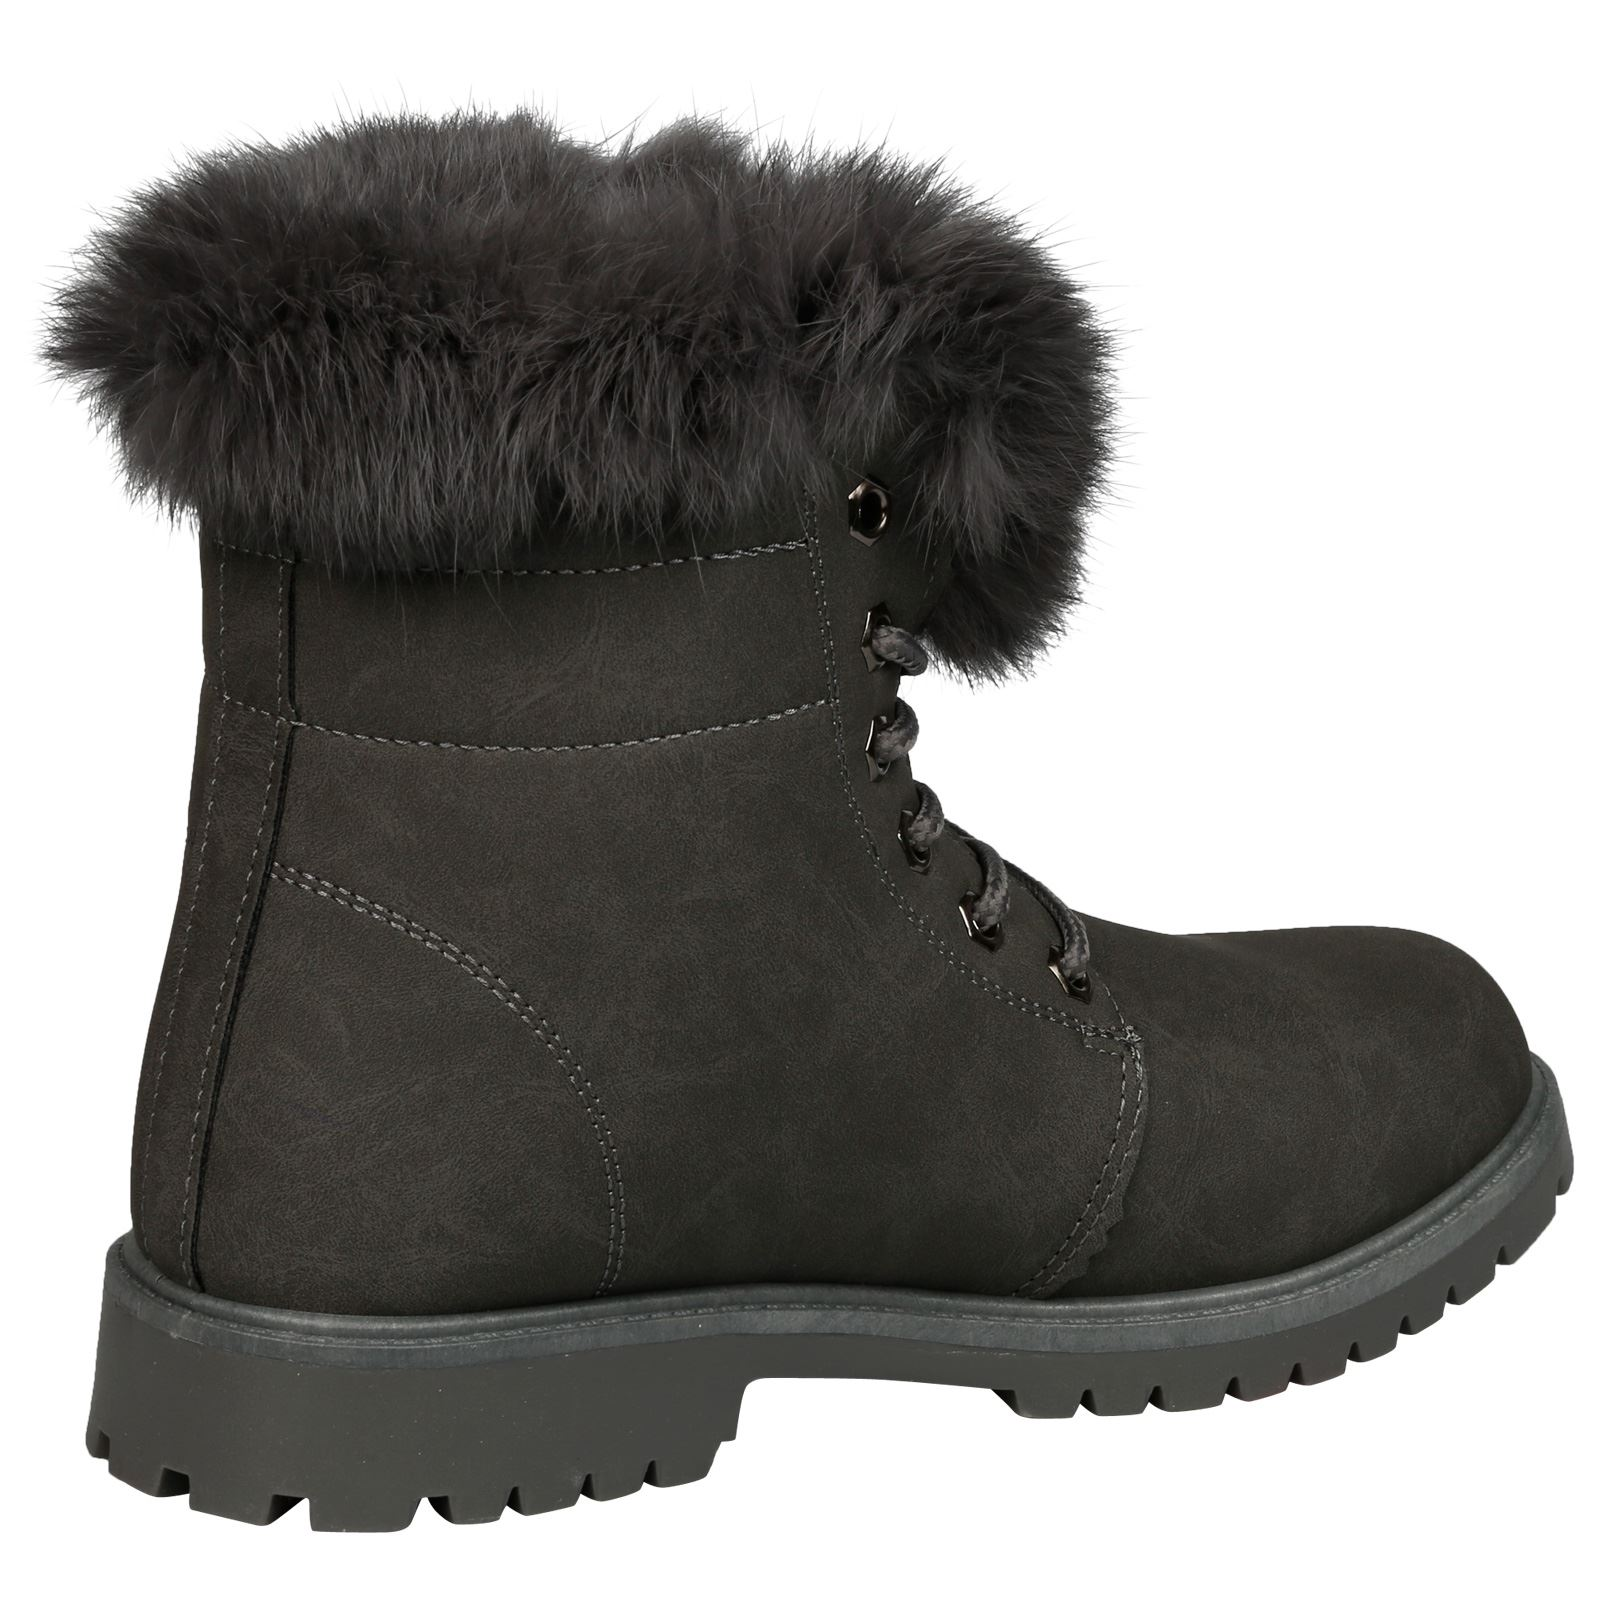 NEW-WOMEN-SHOES-LADIES-FUR-LINED-LOW-HEEL-LACE-UP-ANKLE-BOOTS-CASUAL-STYLE-SIZE thumbnail 22